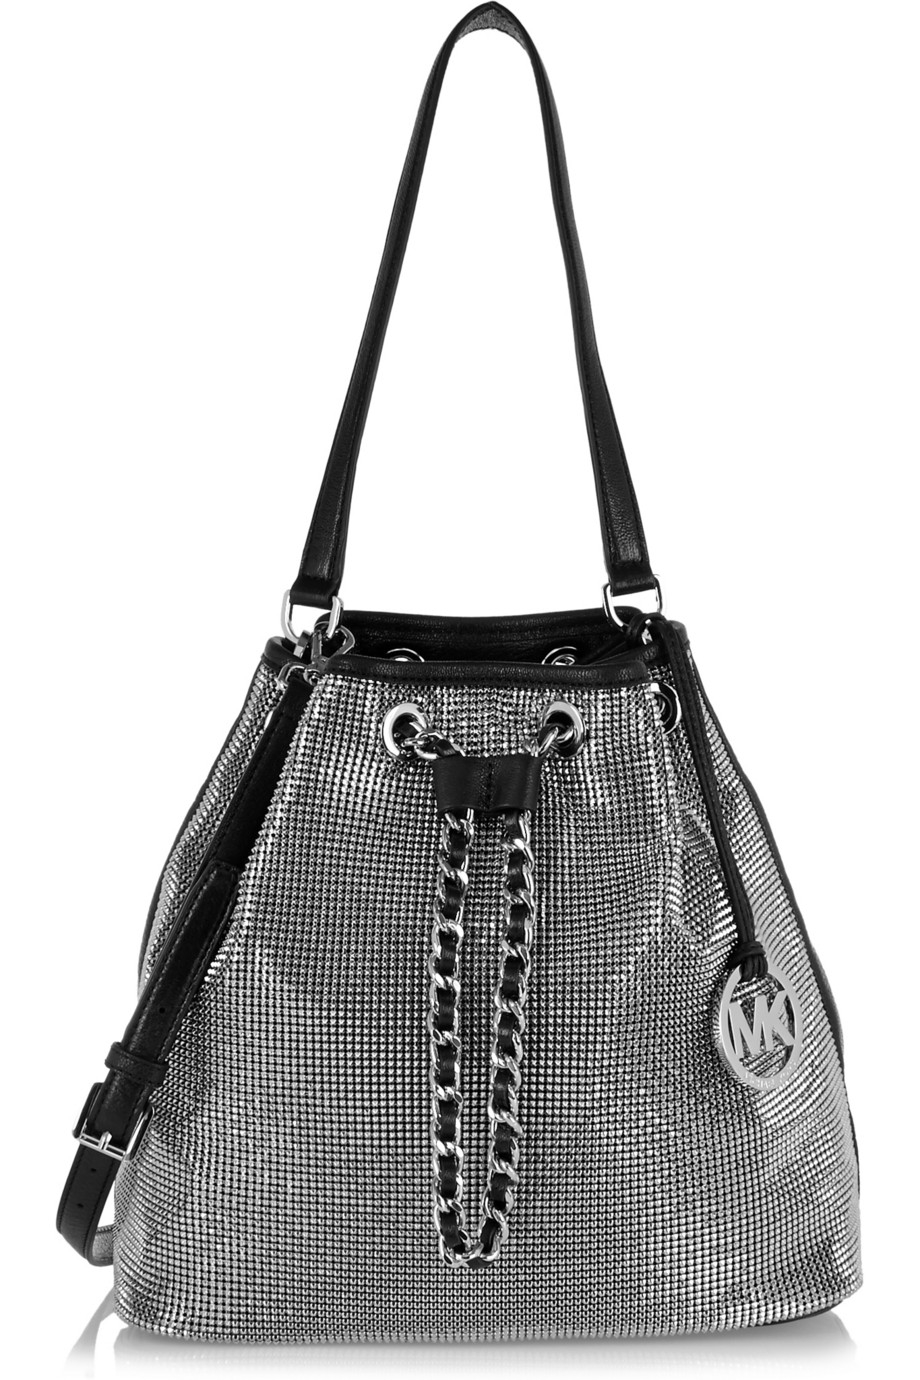 031a201e Gallery. Previously sold at: NET-A-PORTER · Women's Michael Kors Frankie